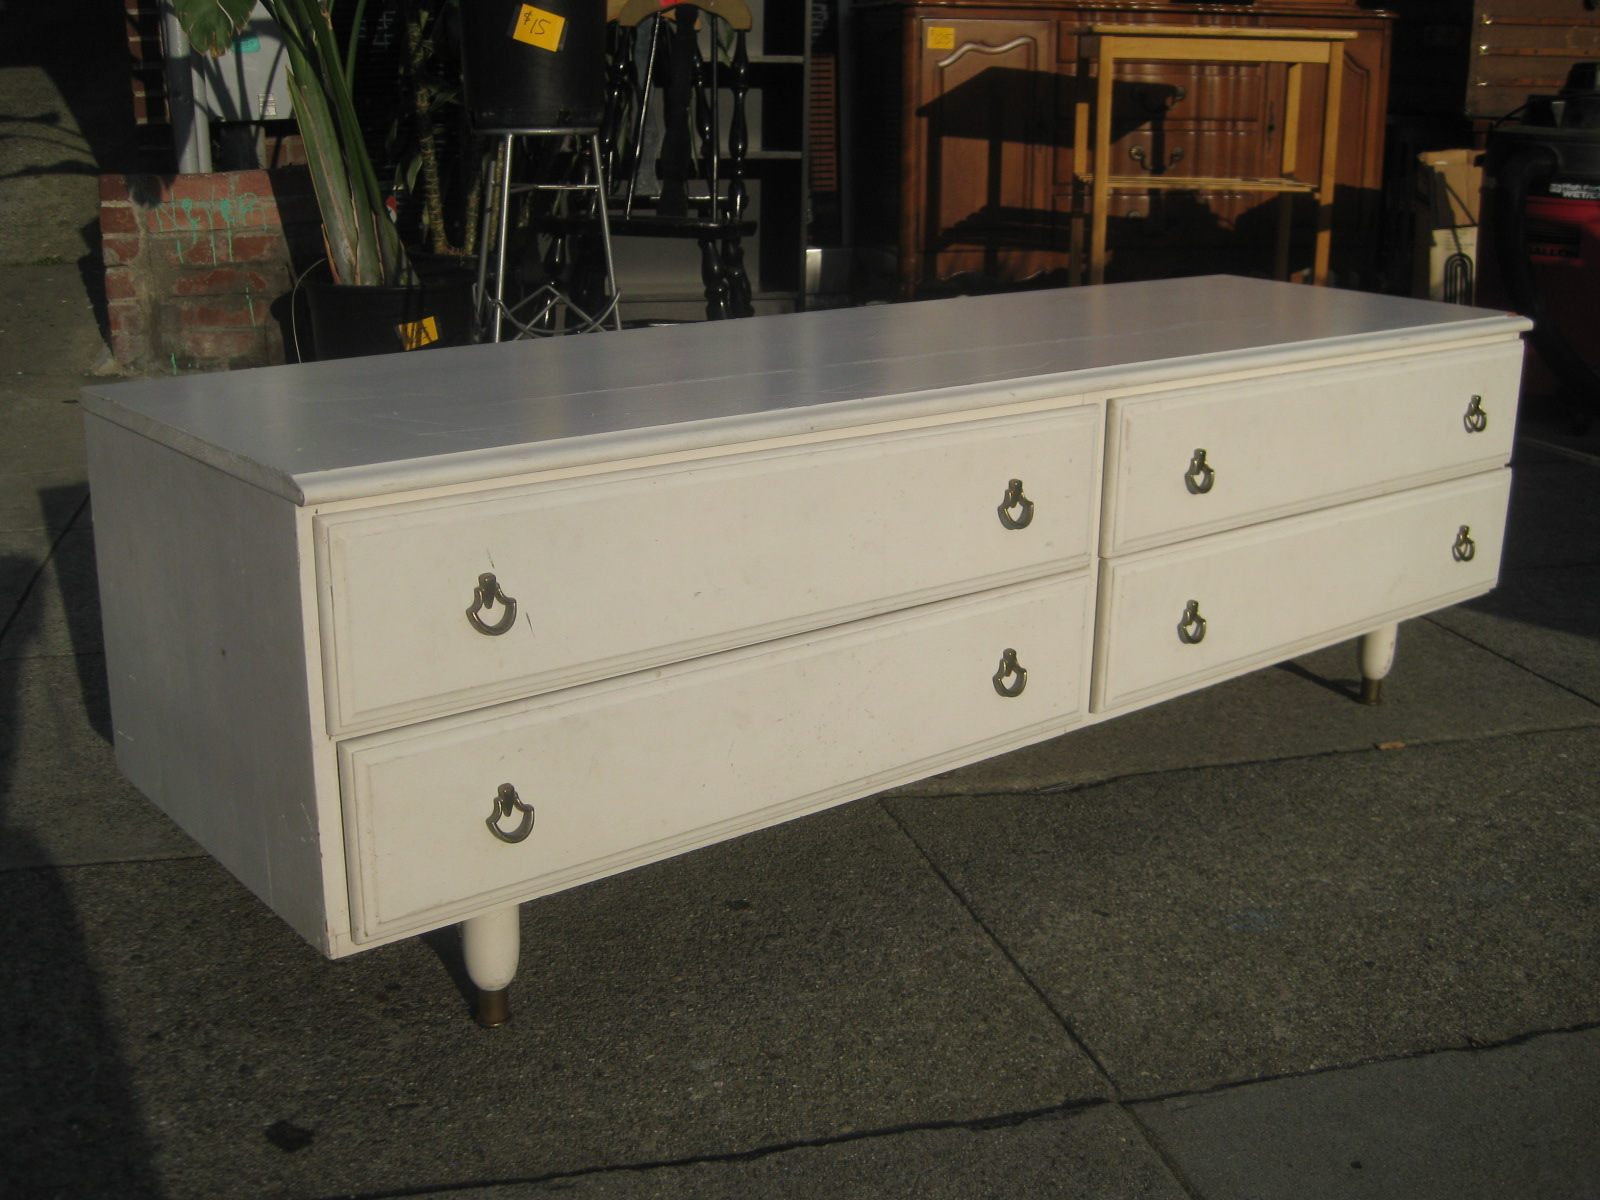 UHURU FURNITURE & COLLECTIBLES: SOLD - Long Low Dresser - $50